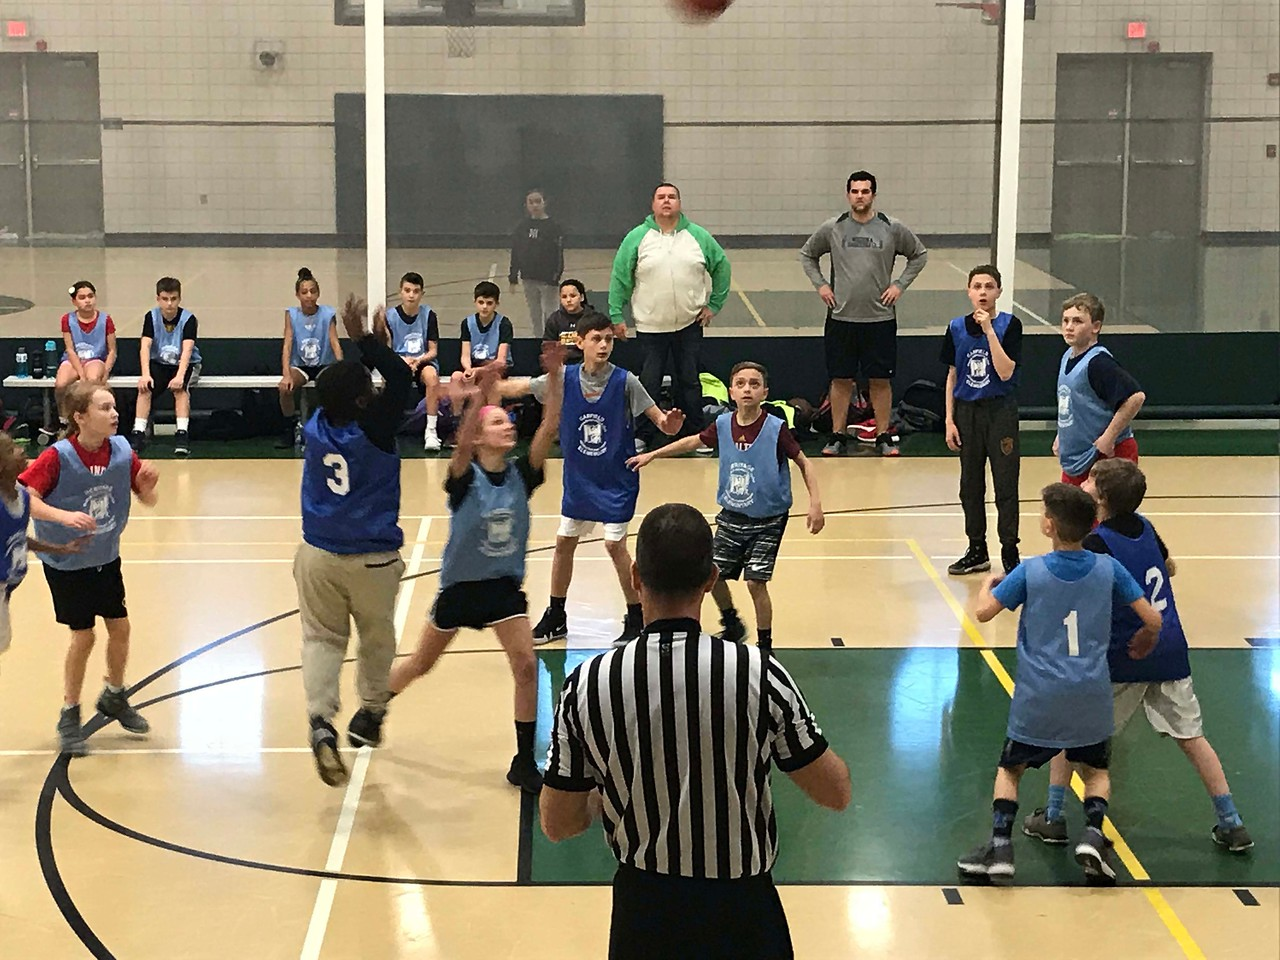 NATHAN HAVENNER / GAZETTE  Fifth-graders from Medina Schools' Heritage Elementary and Garfield Elementary compete Thursday in the Medina County Police Activities League March Madness Basketball Tournament at Medina Community Recreation Center.